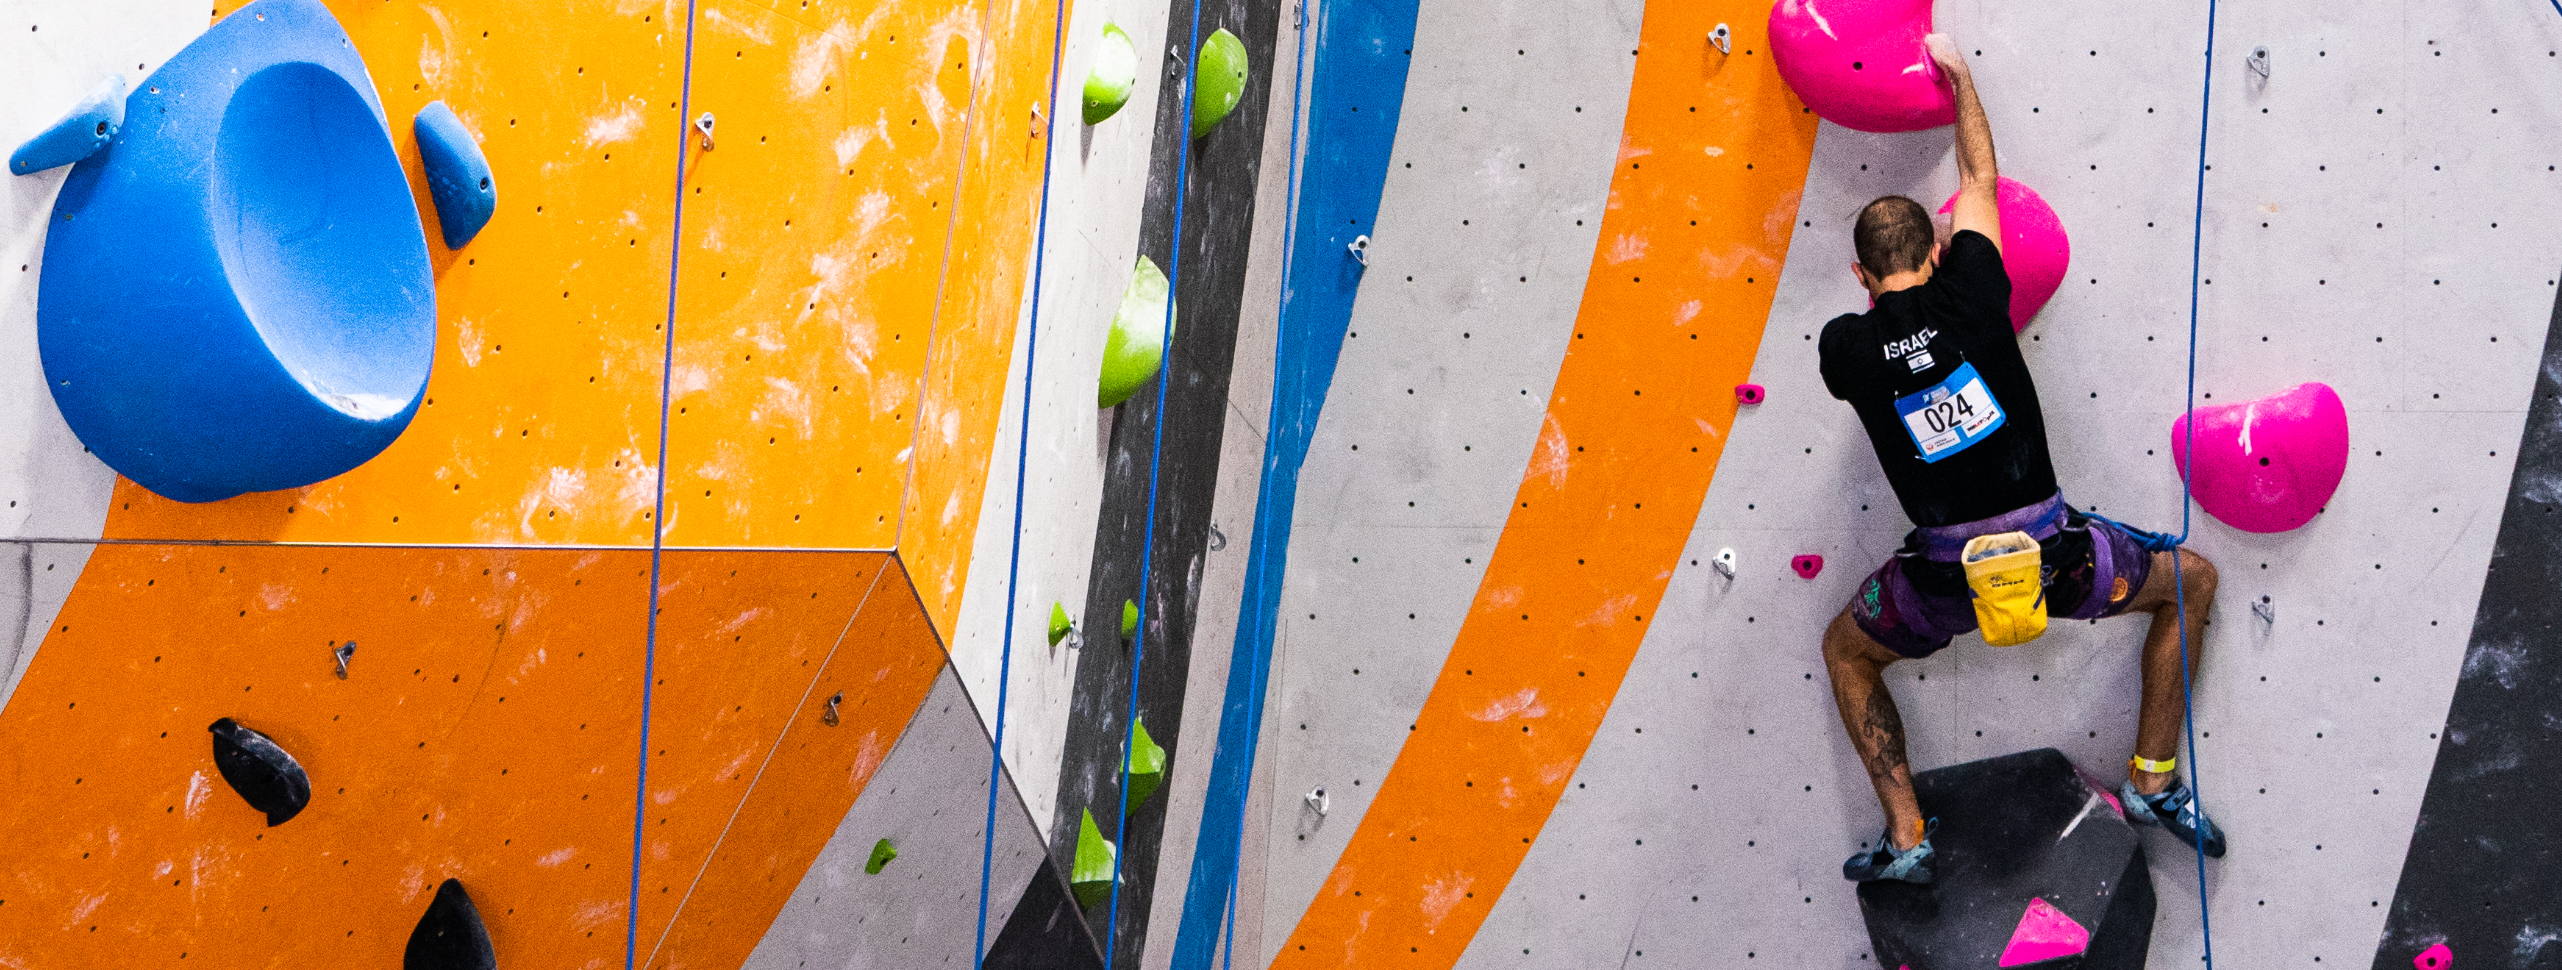 PARACLIMBING QUALIFICATIONS RESULTS IN LOS ANGELES